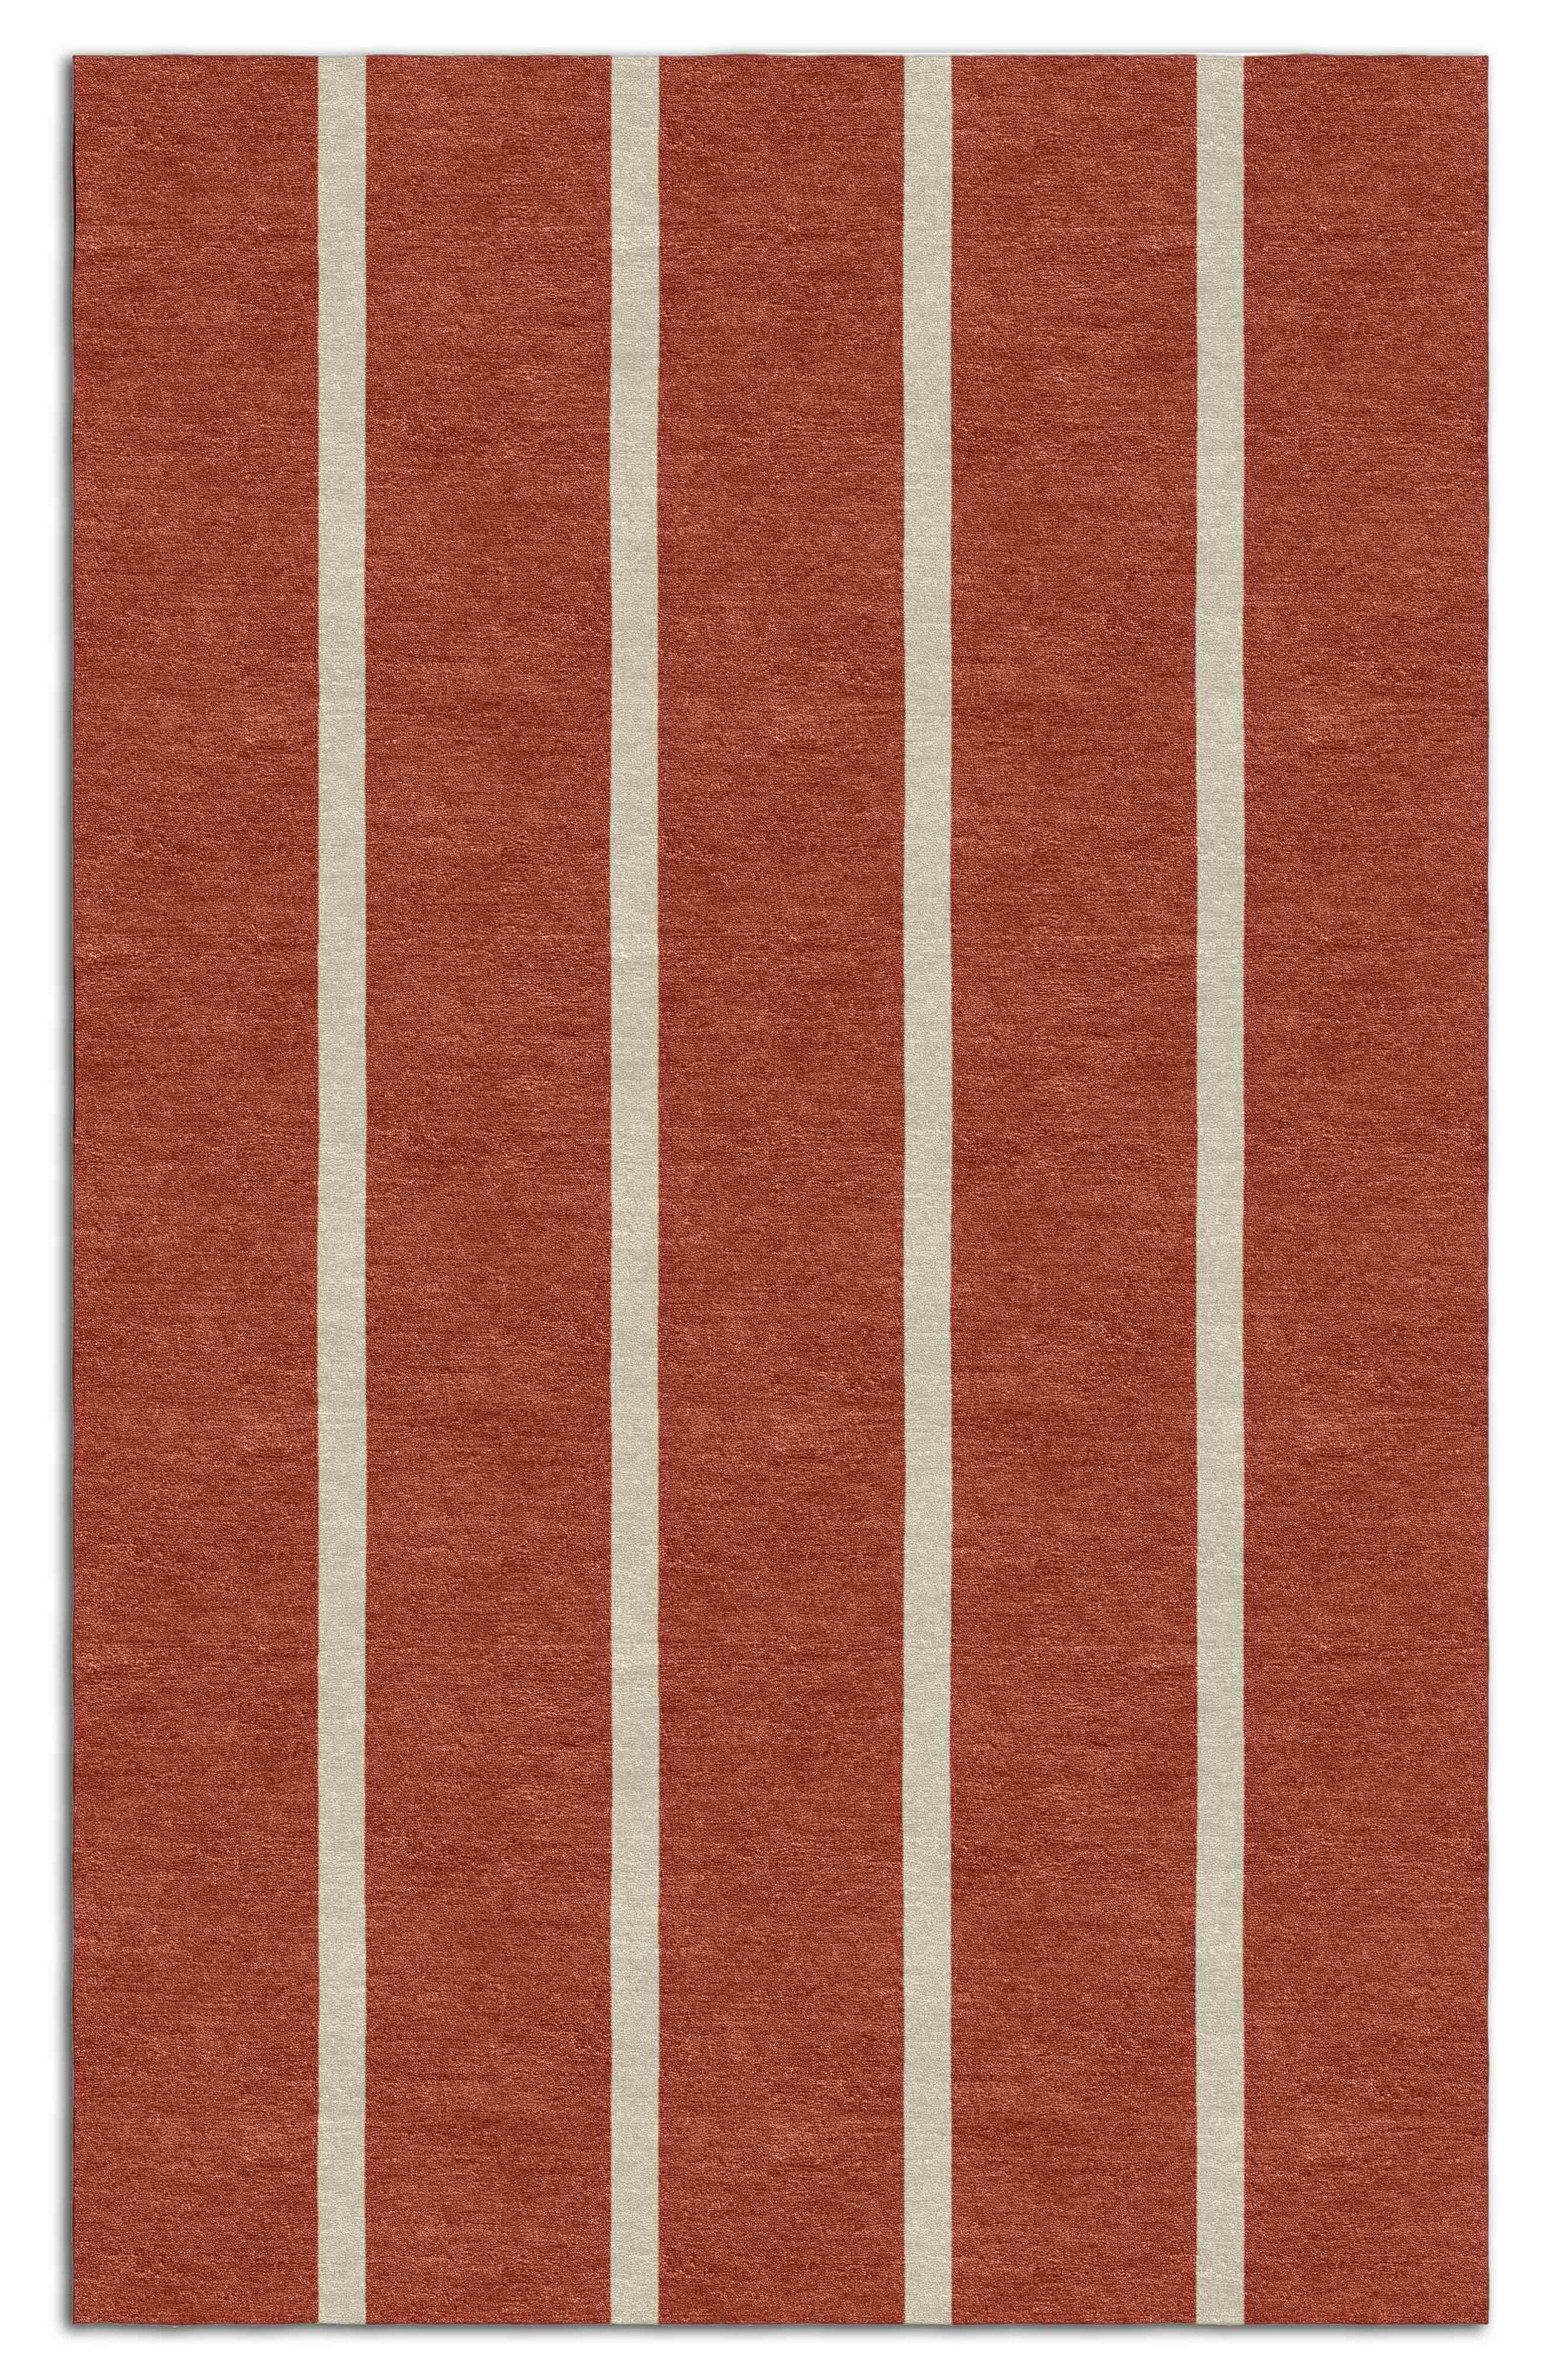 Darby Home Co Telscombe Stripes Hand Tufted Wool Red Area Rug Wayfair